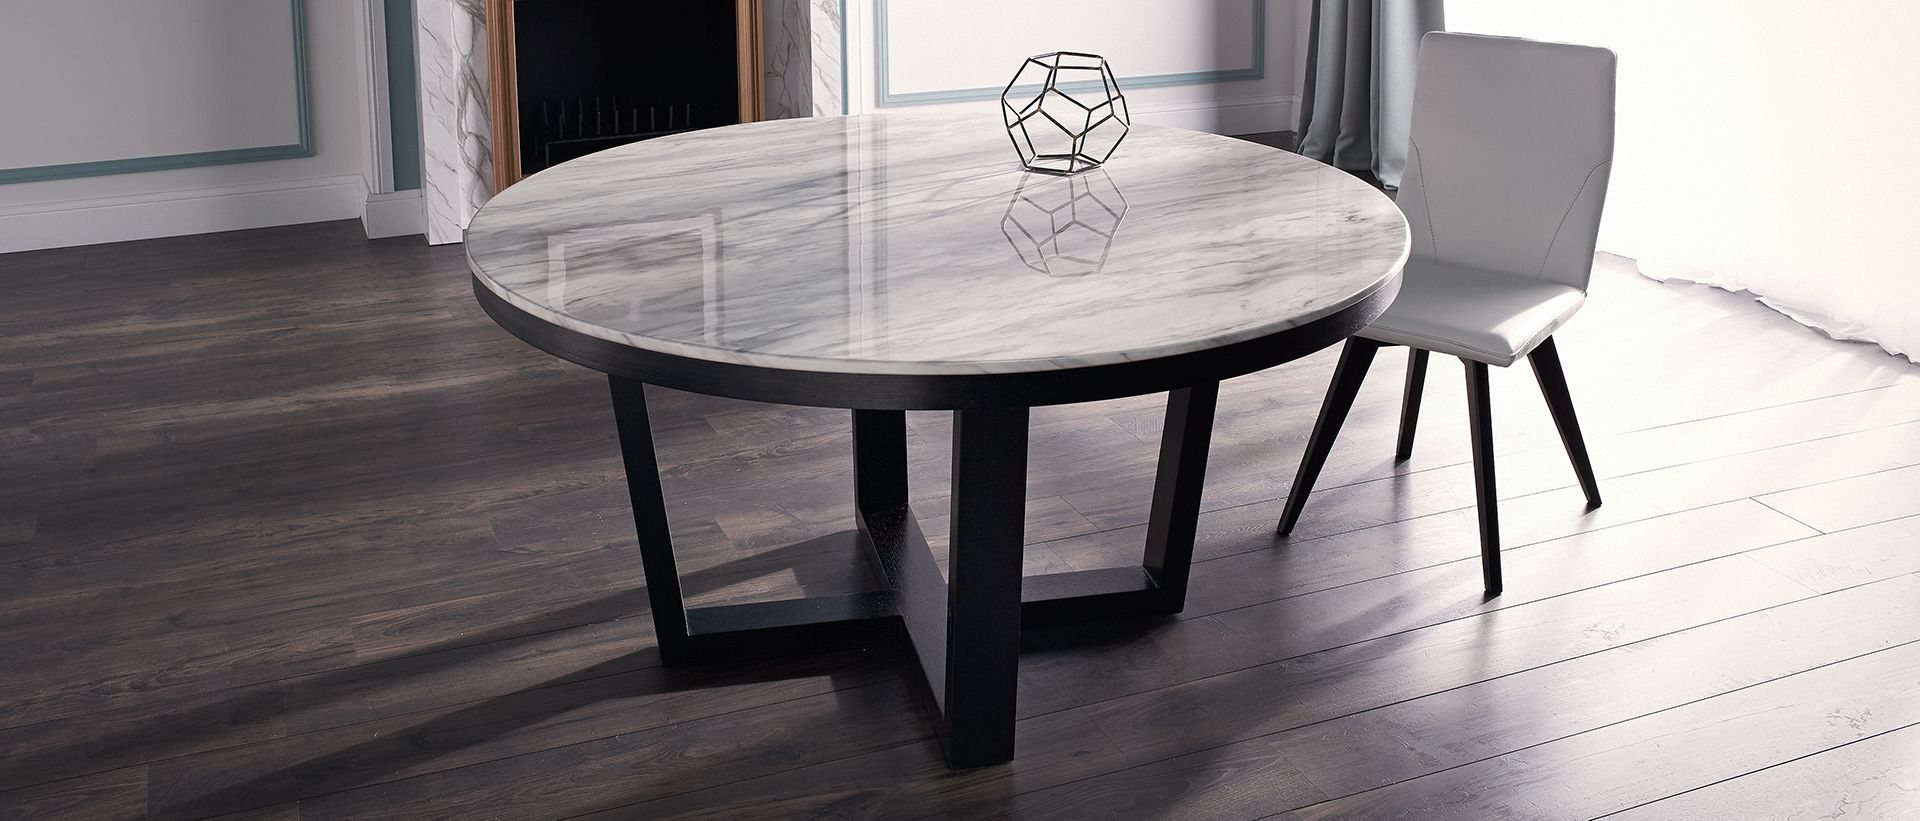 Round, Wood & Concrete Tables (View 22 of 25)